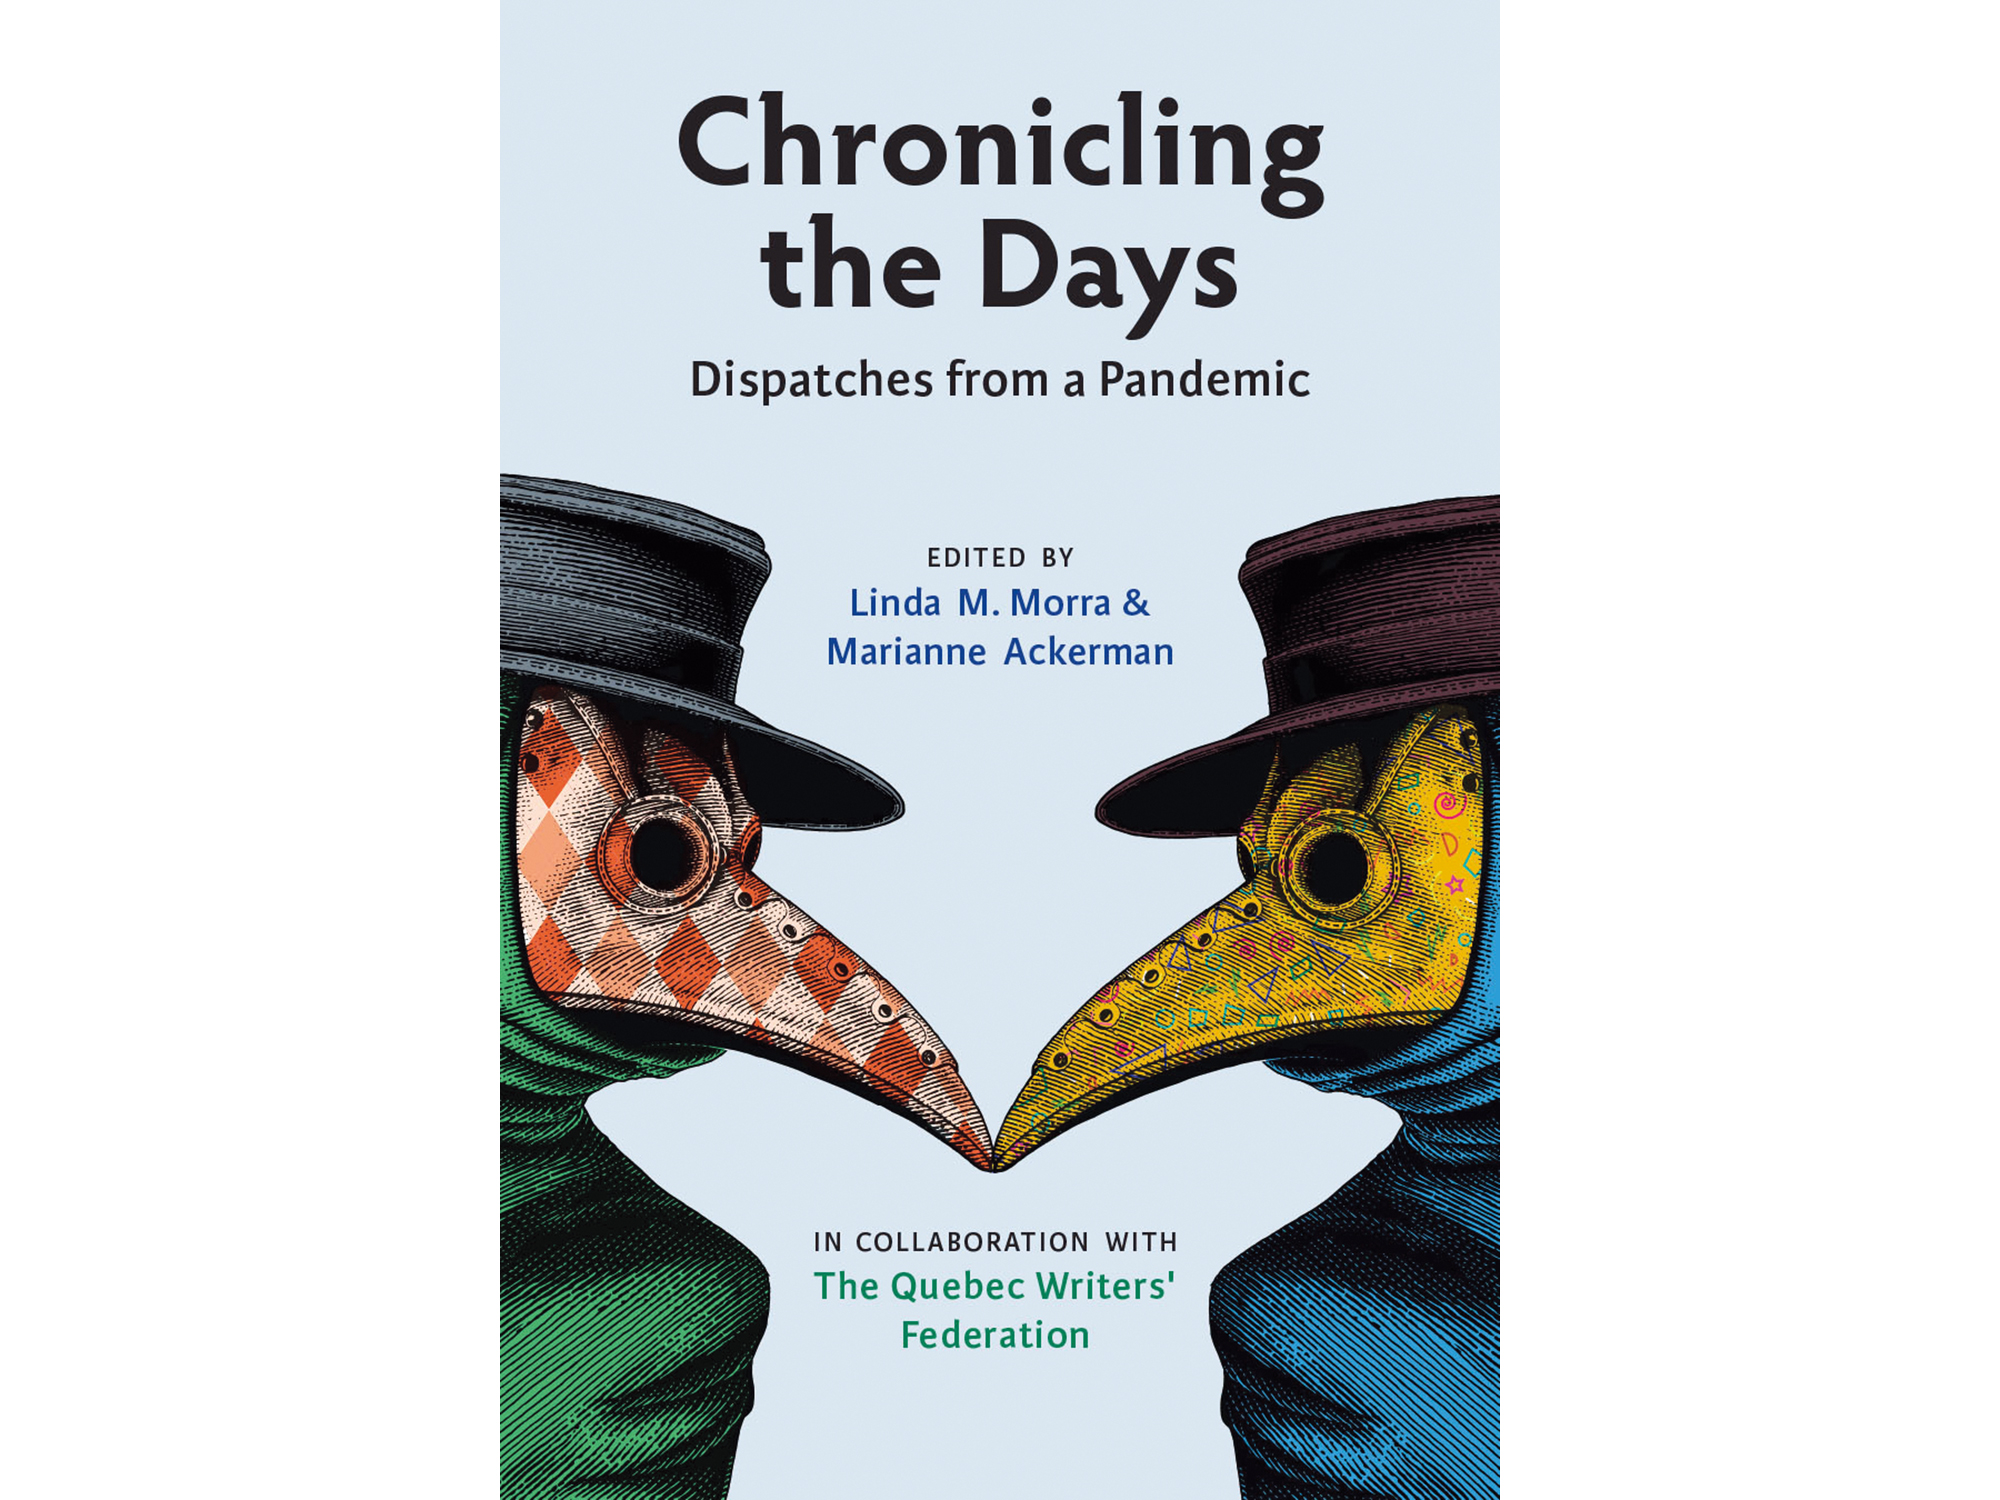 Chronicling the Days